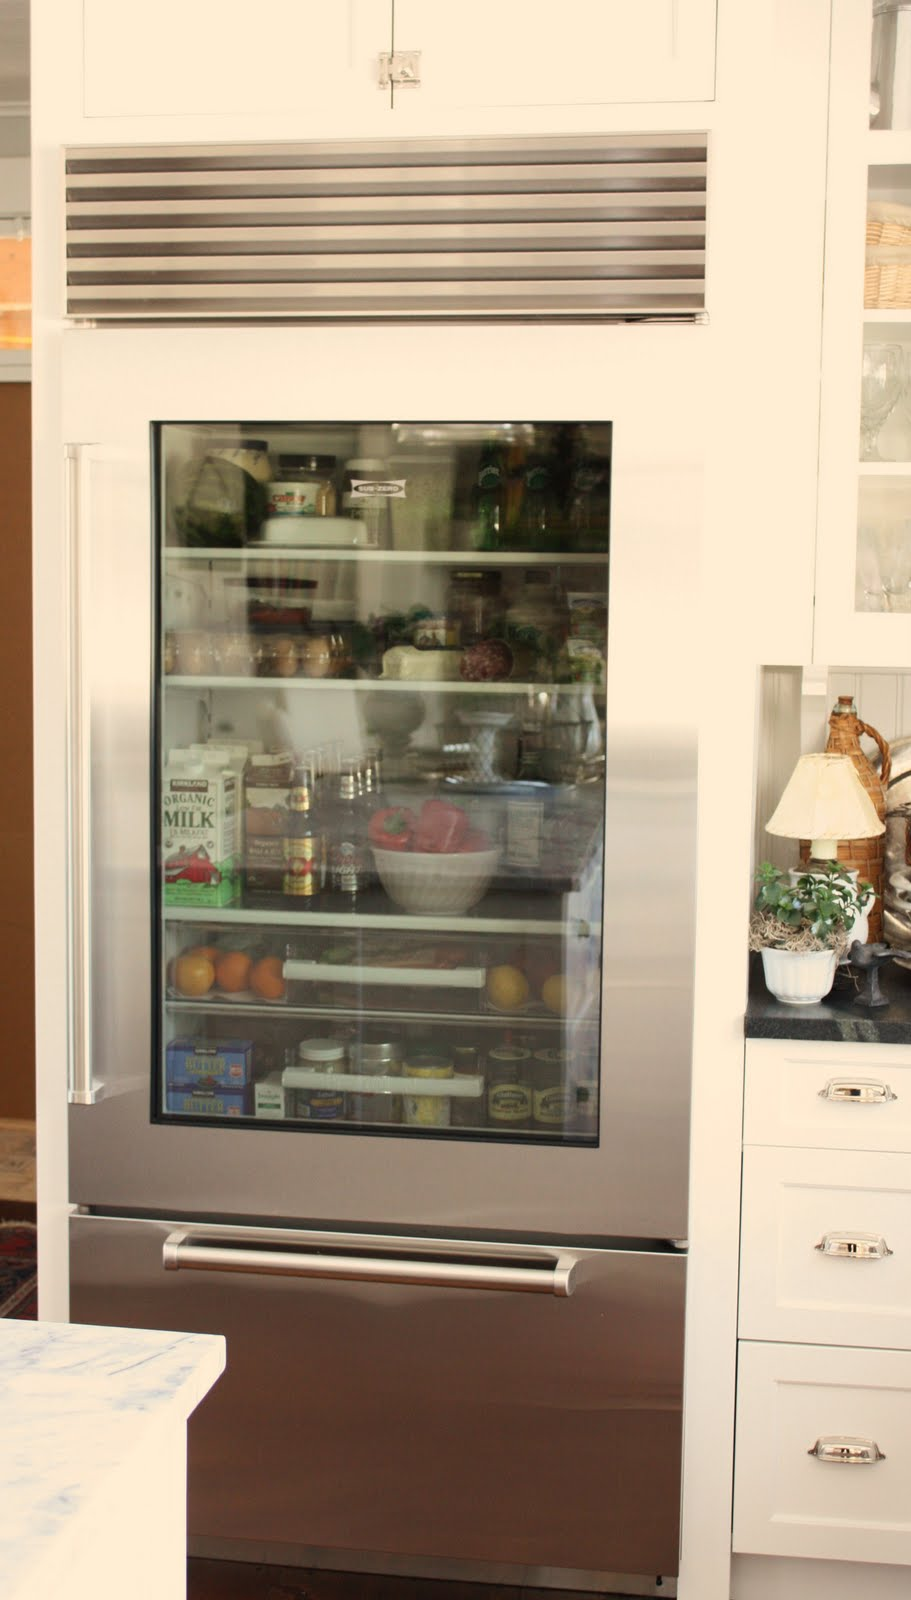 Le Meilleur For The Love Of A House The Glass Door Refrigerator Ce Mois Ci